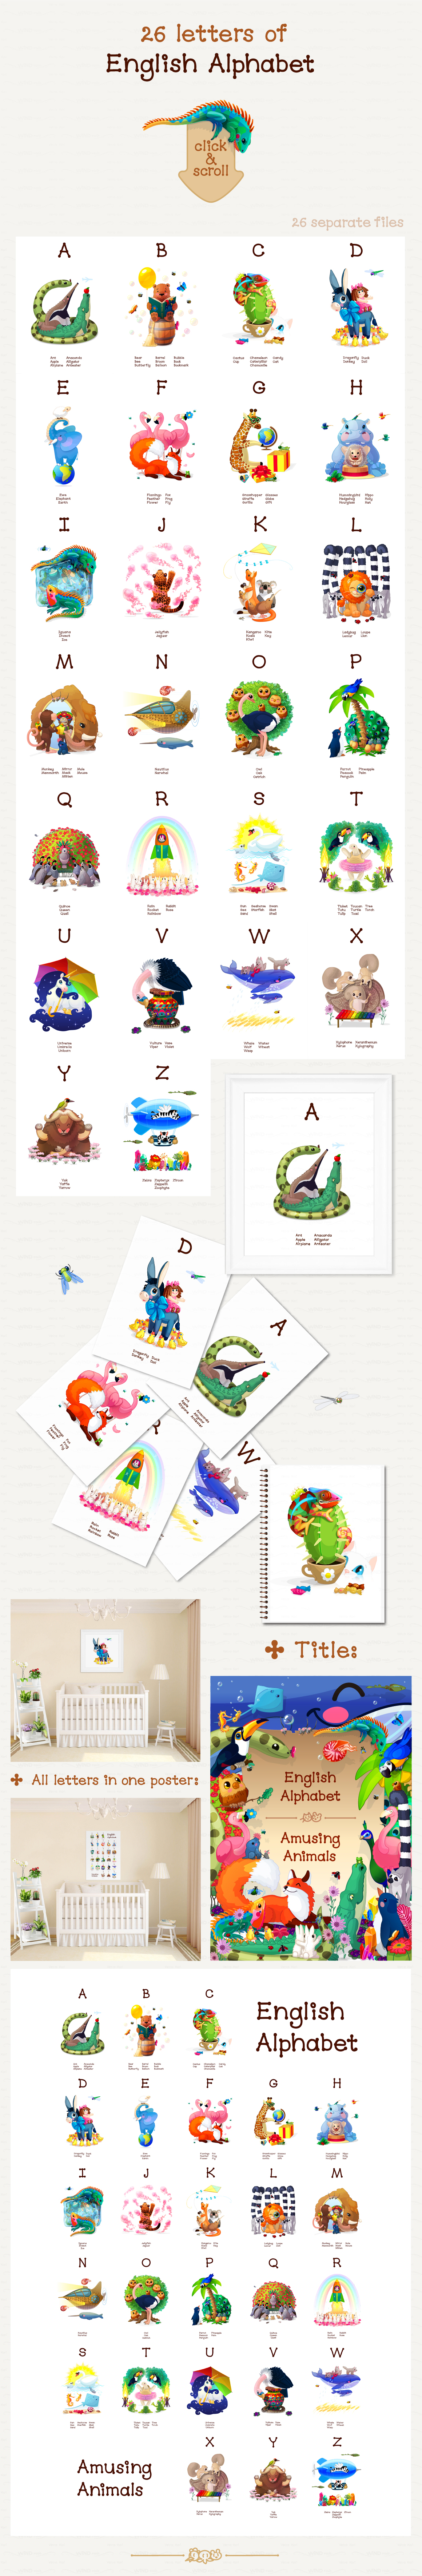 vector English Animals Alphabet  - Illustrations - 2